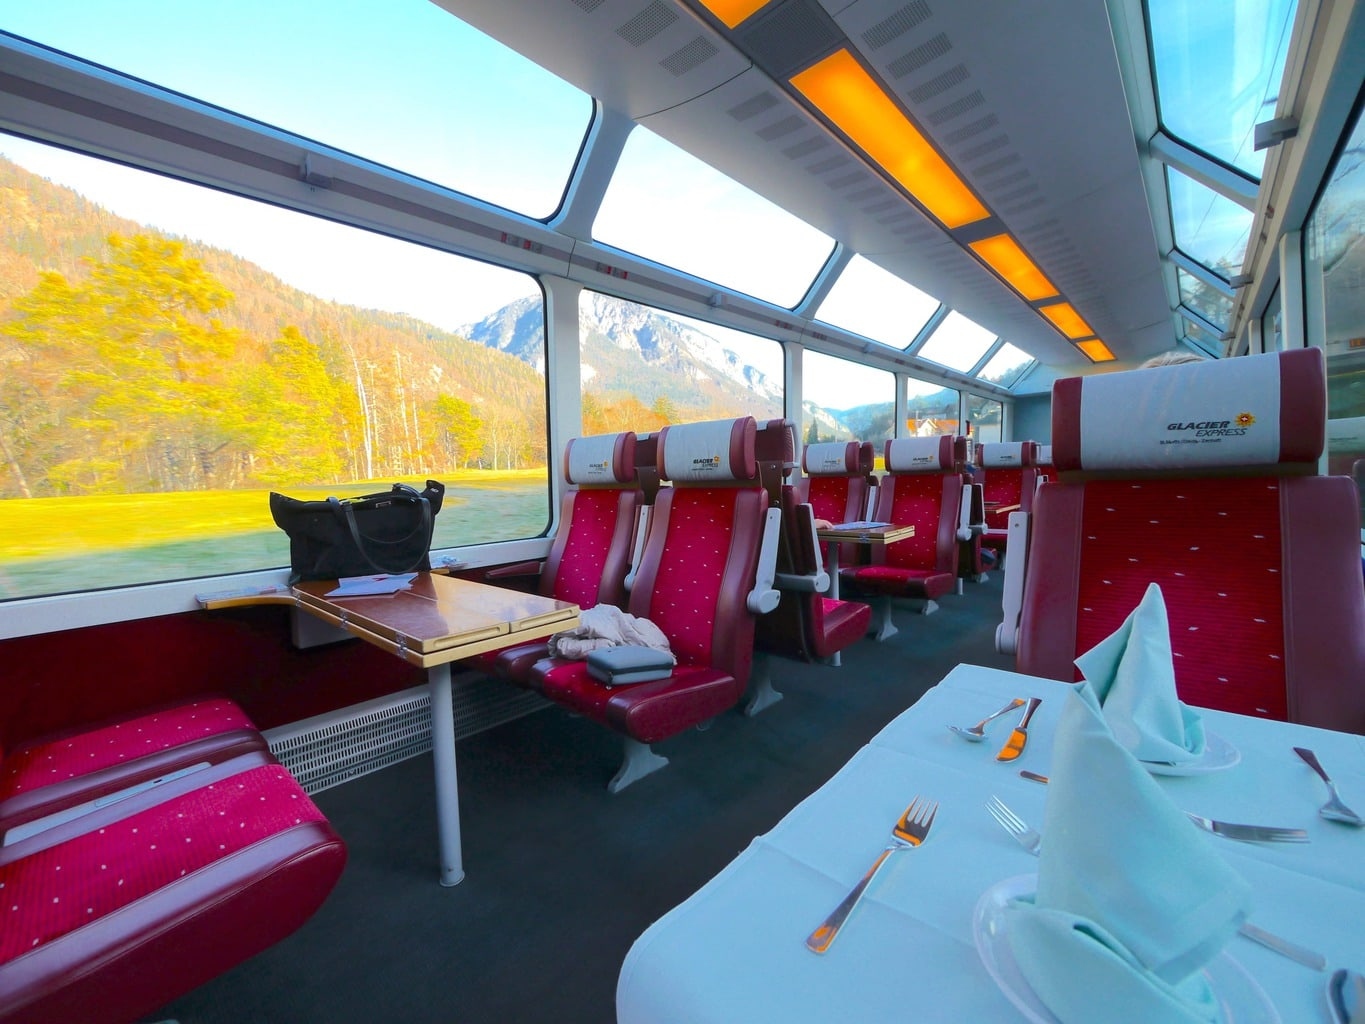 Seats onboard the Glacier Express